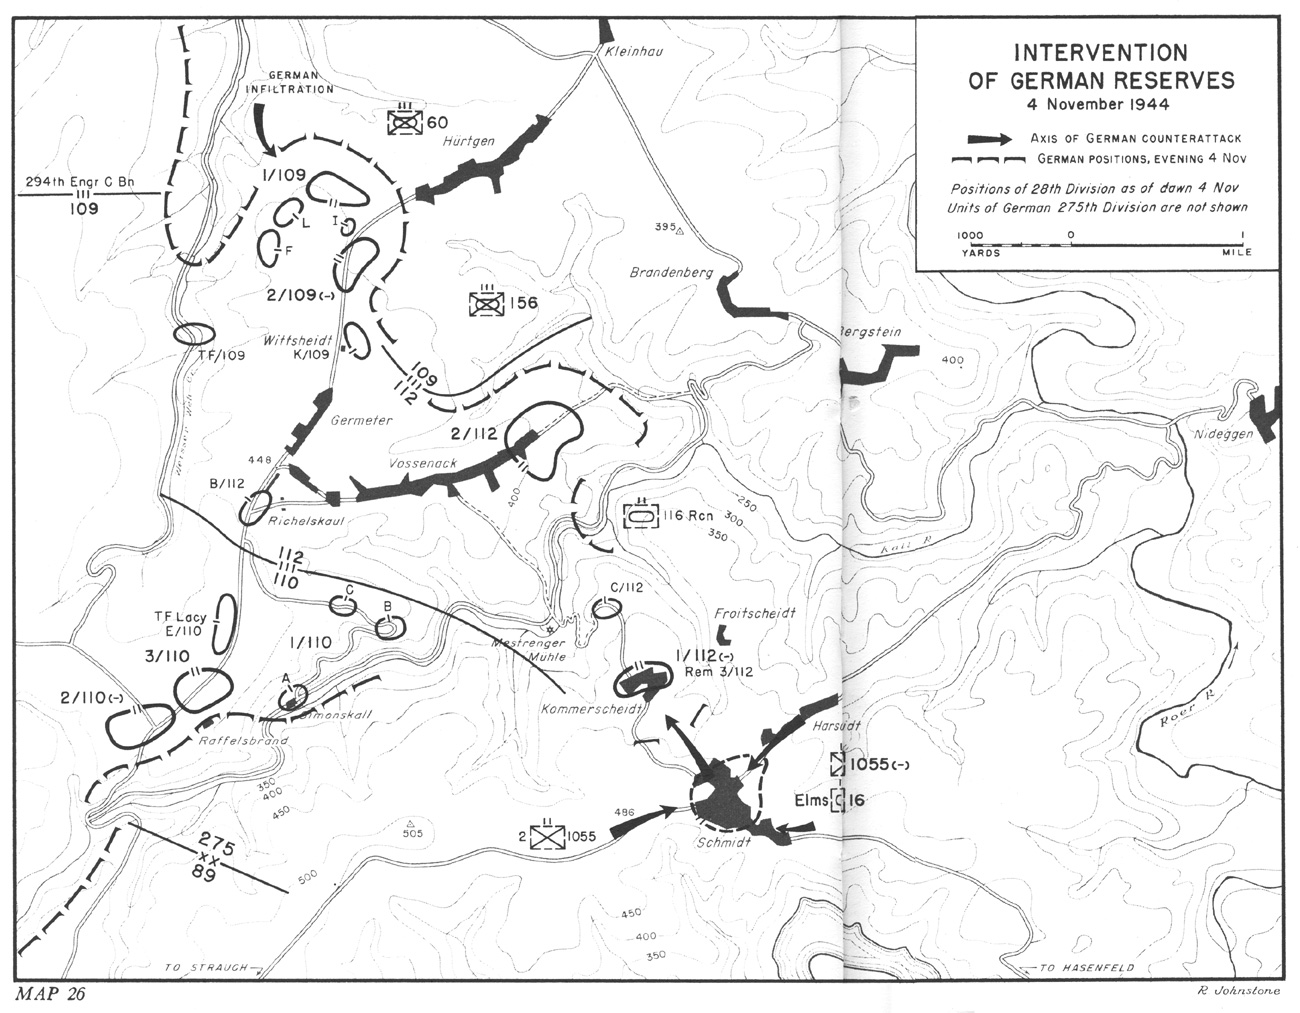 hyperwar three battles arnaville altuzzo and schmidt 350th Infantry Regiment intervention of german reserves 4 november 1944